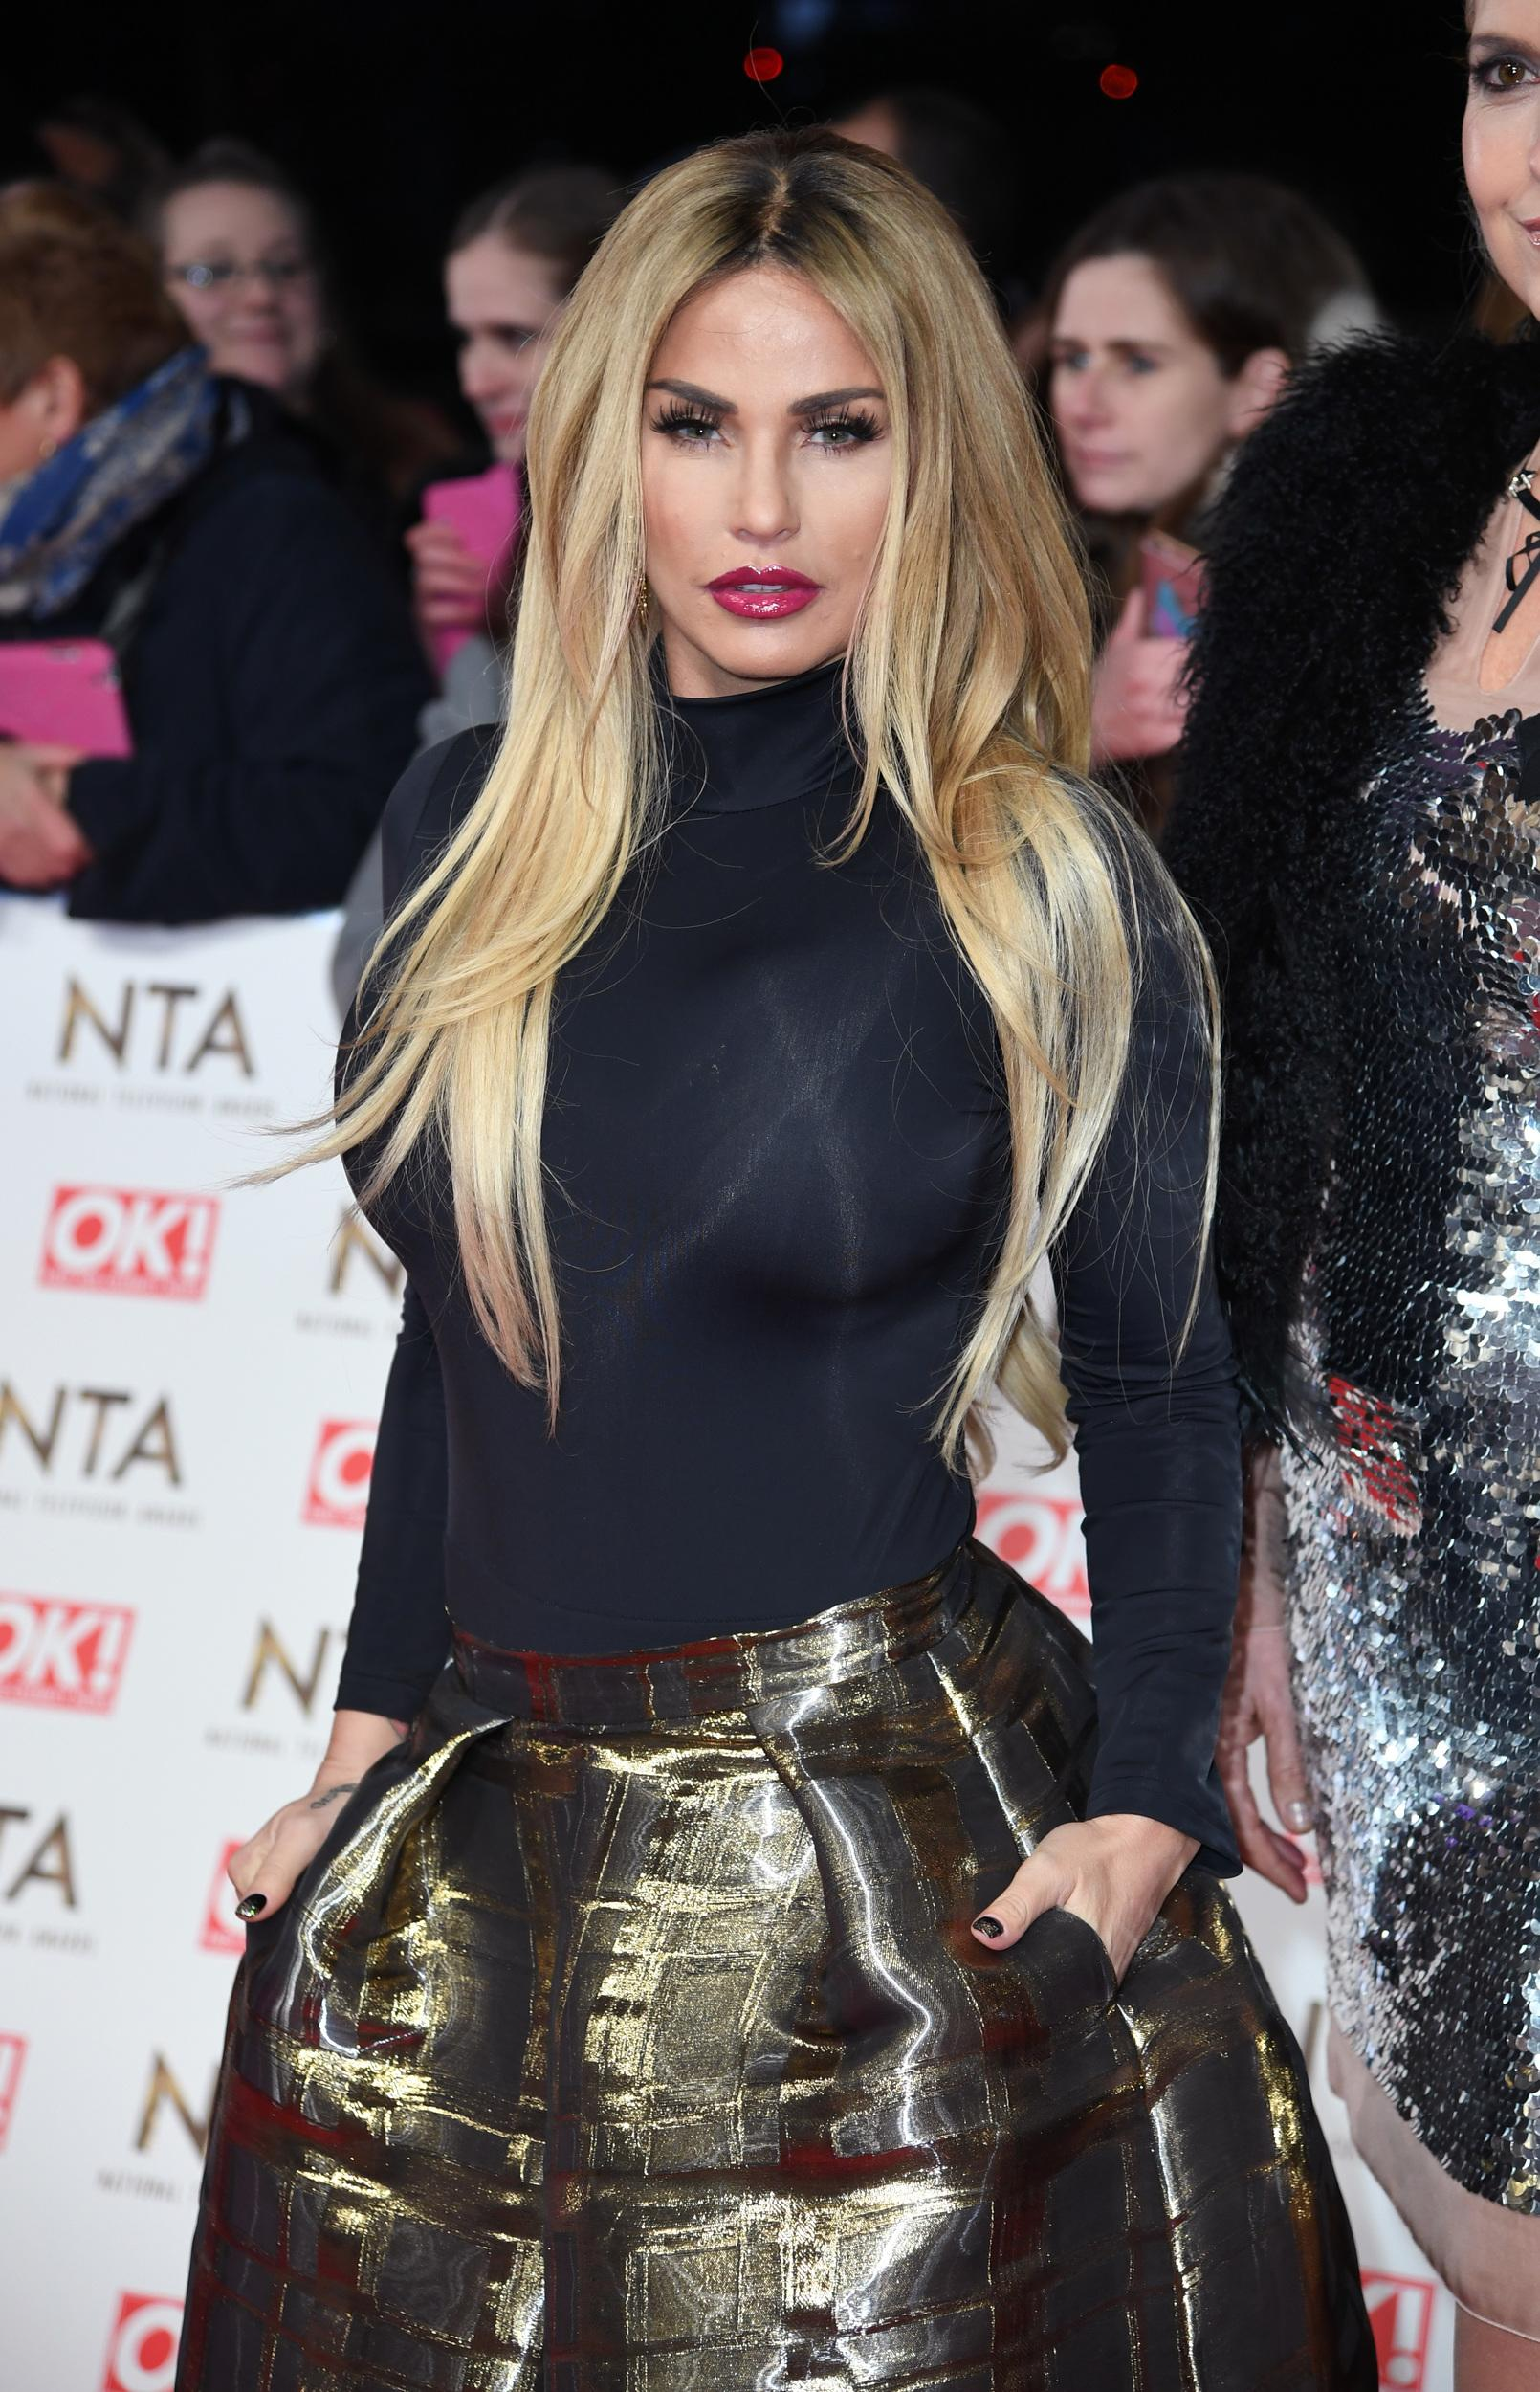 Katie Price attending the National Television Awards 2017 held at the O2, London. Photo credit should read: Doug Peters/EMPICS Entertainment